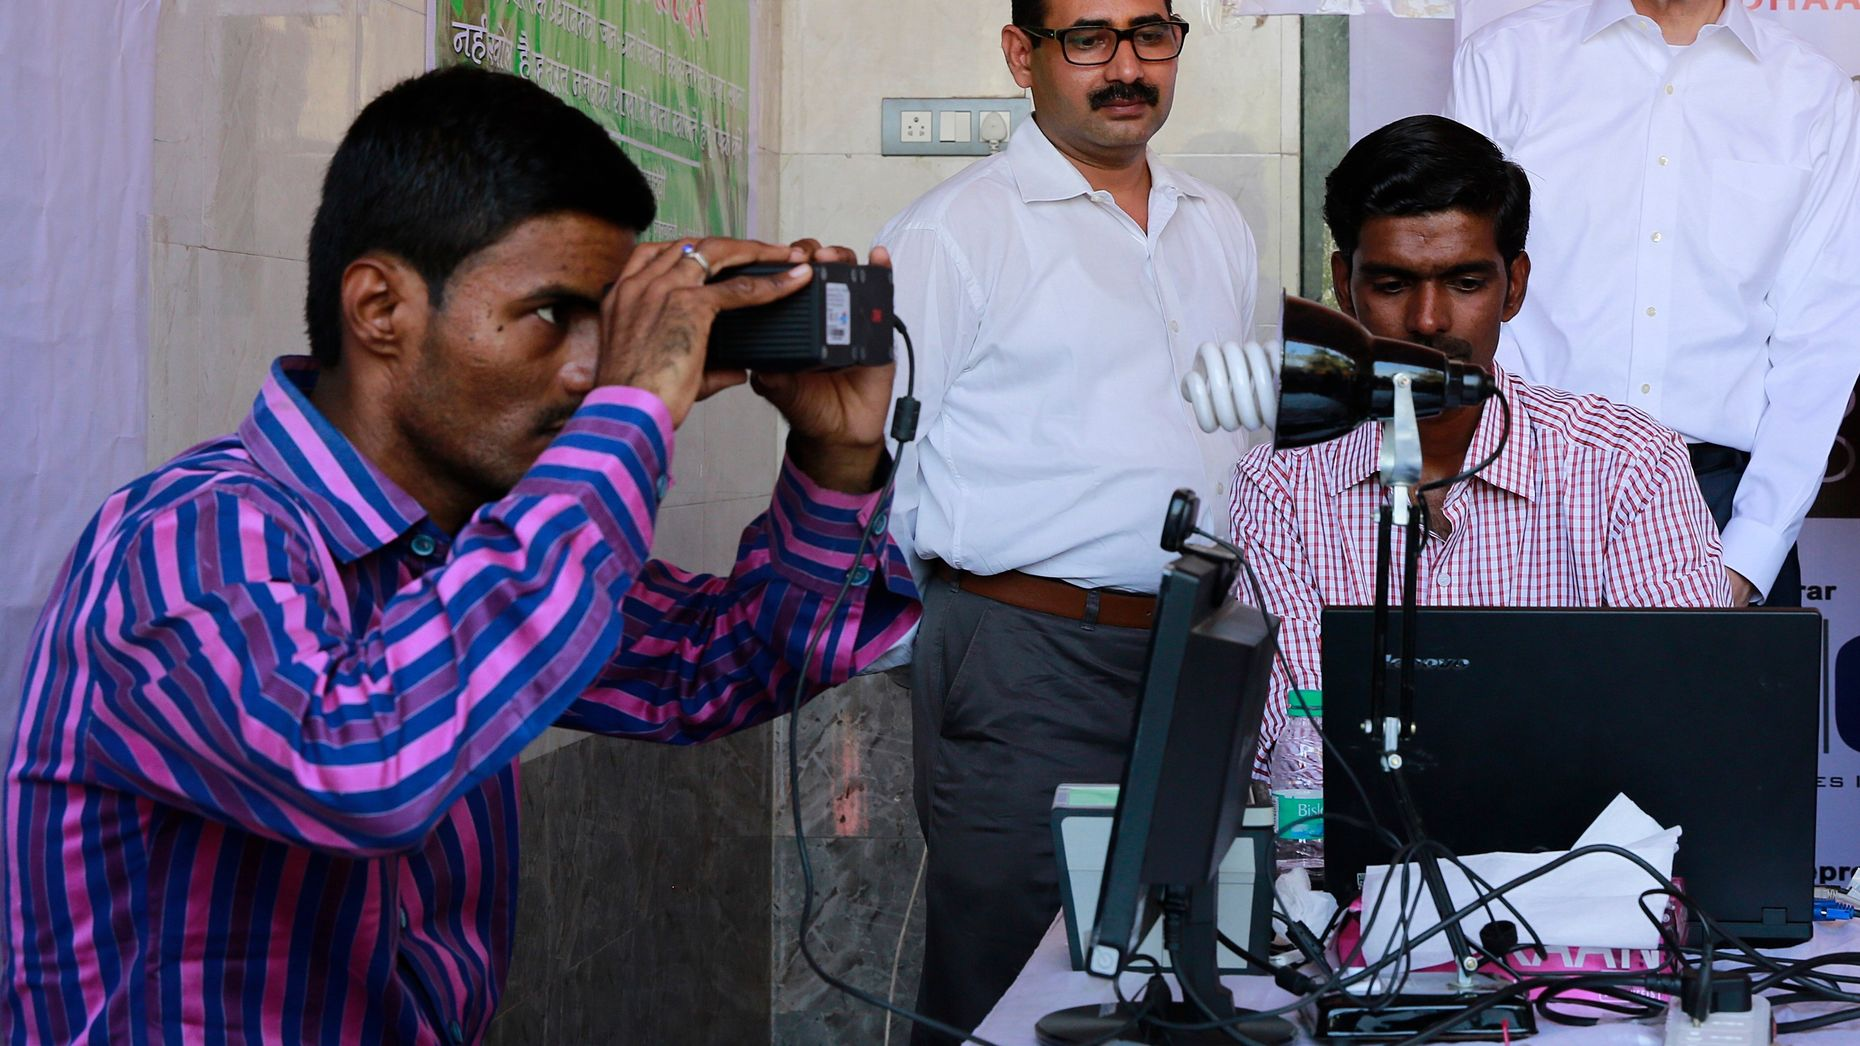 An enrollment camp for Aadhaar in Mumbai, India. Photo by AP.